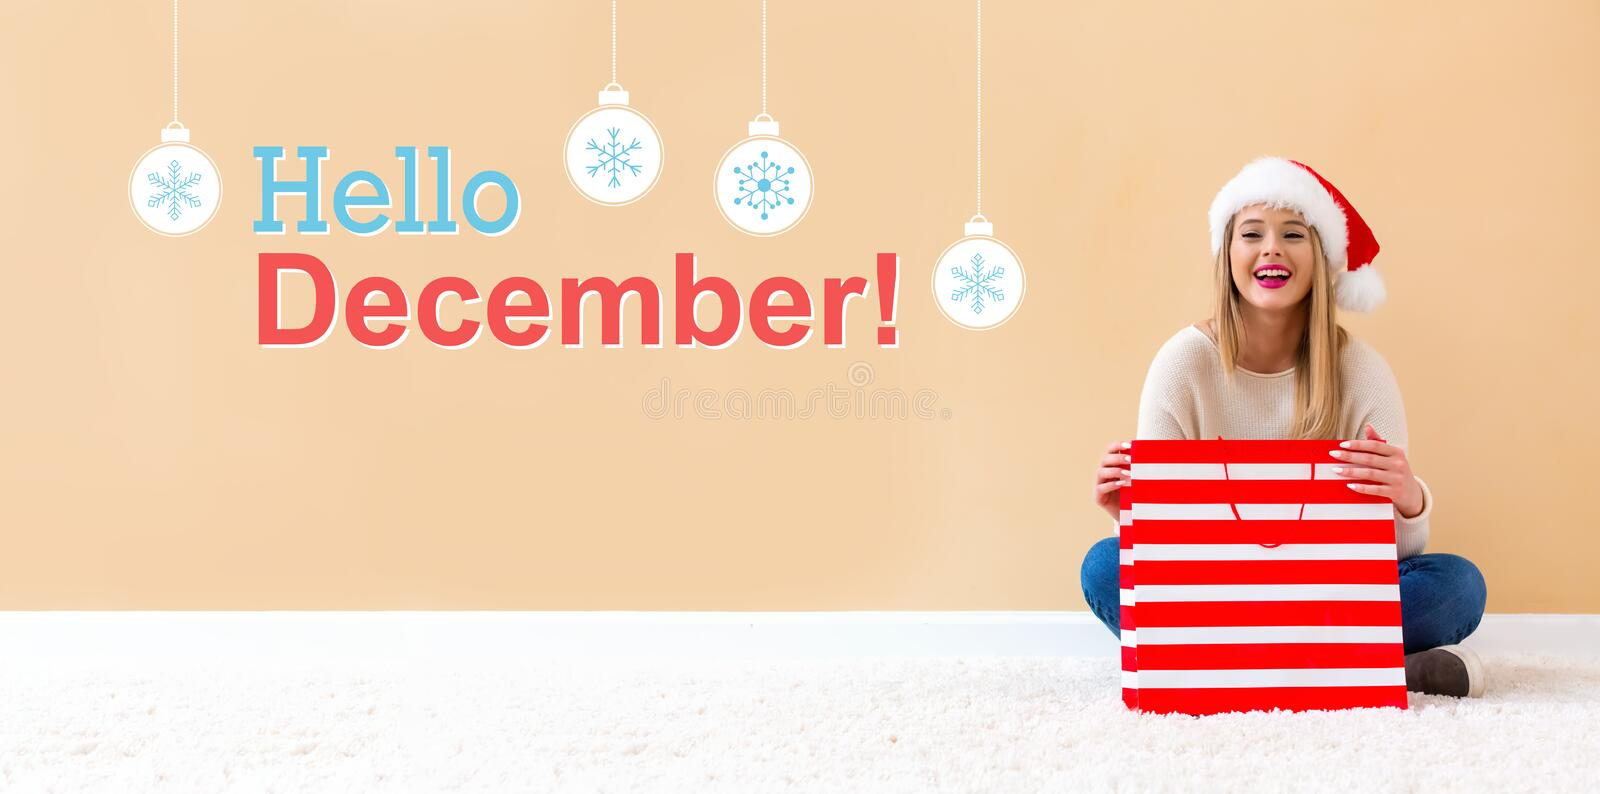 Hello December message with woman with Santa hat holding a shopping bag. Hello December message with happy woman with Santa hat holding a shopping bag stock images